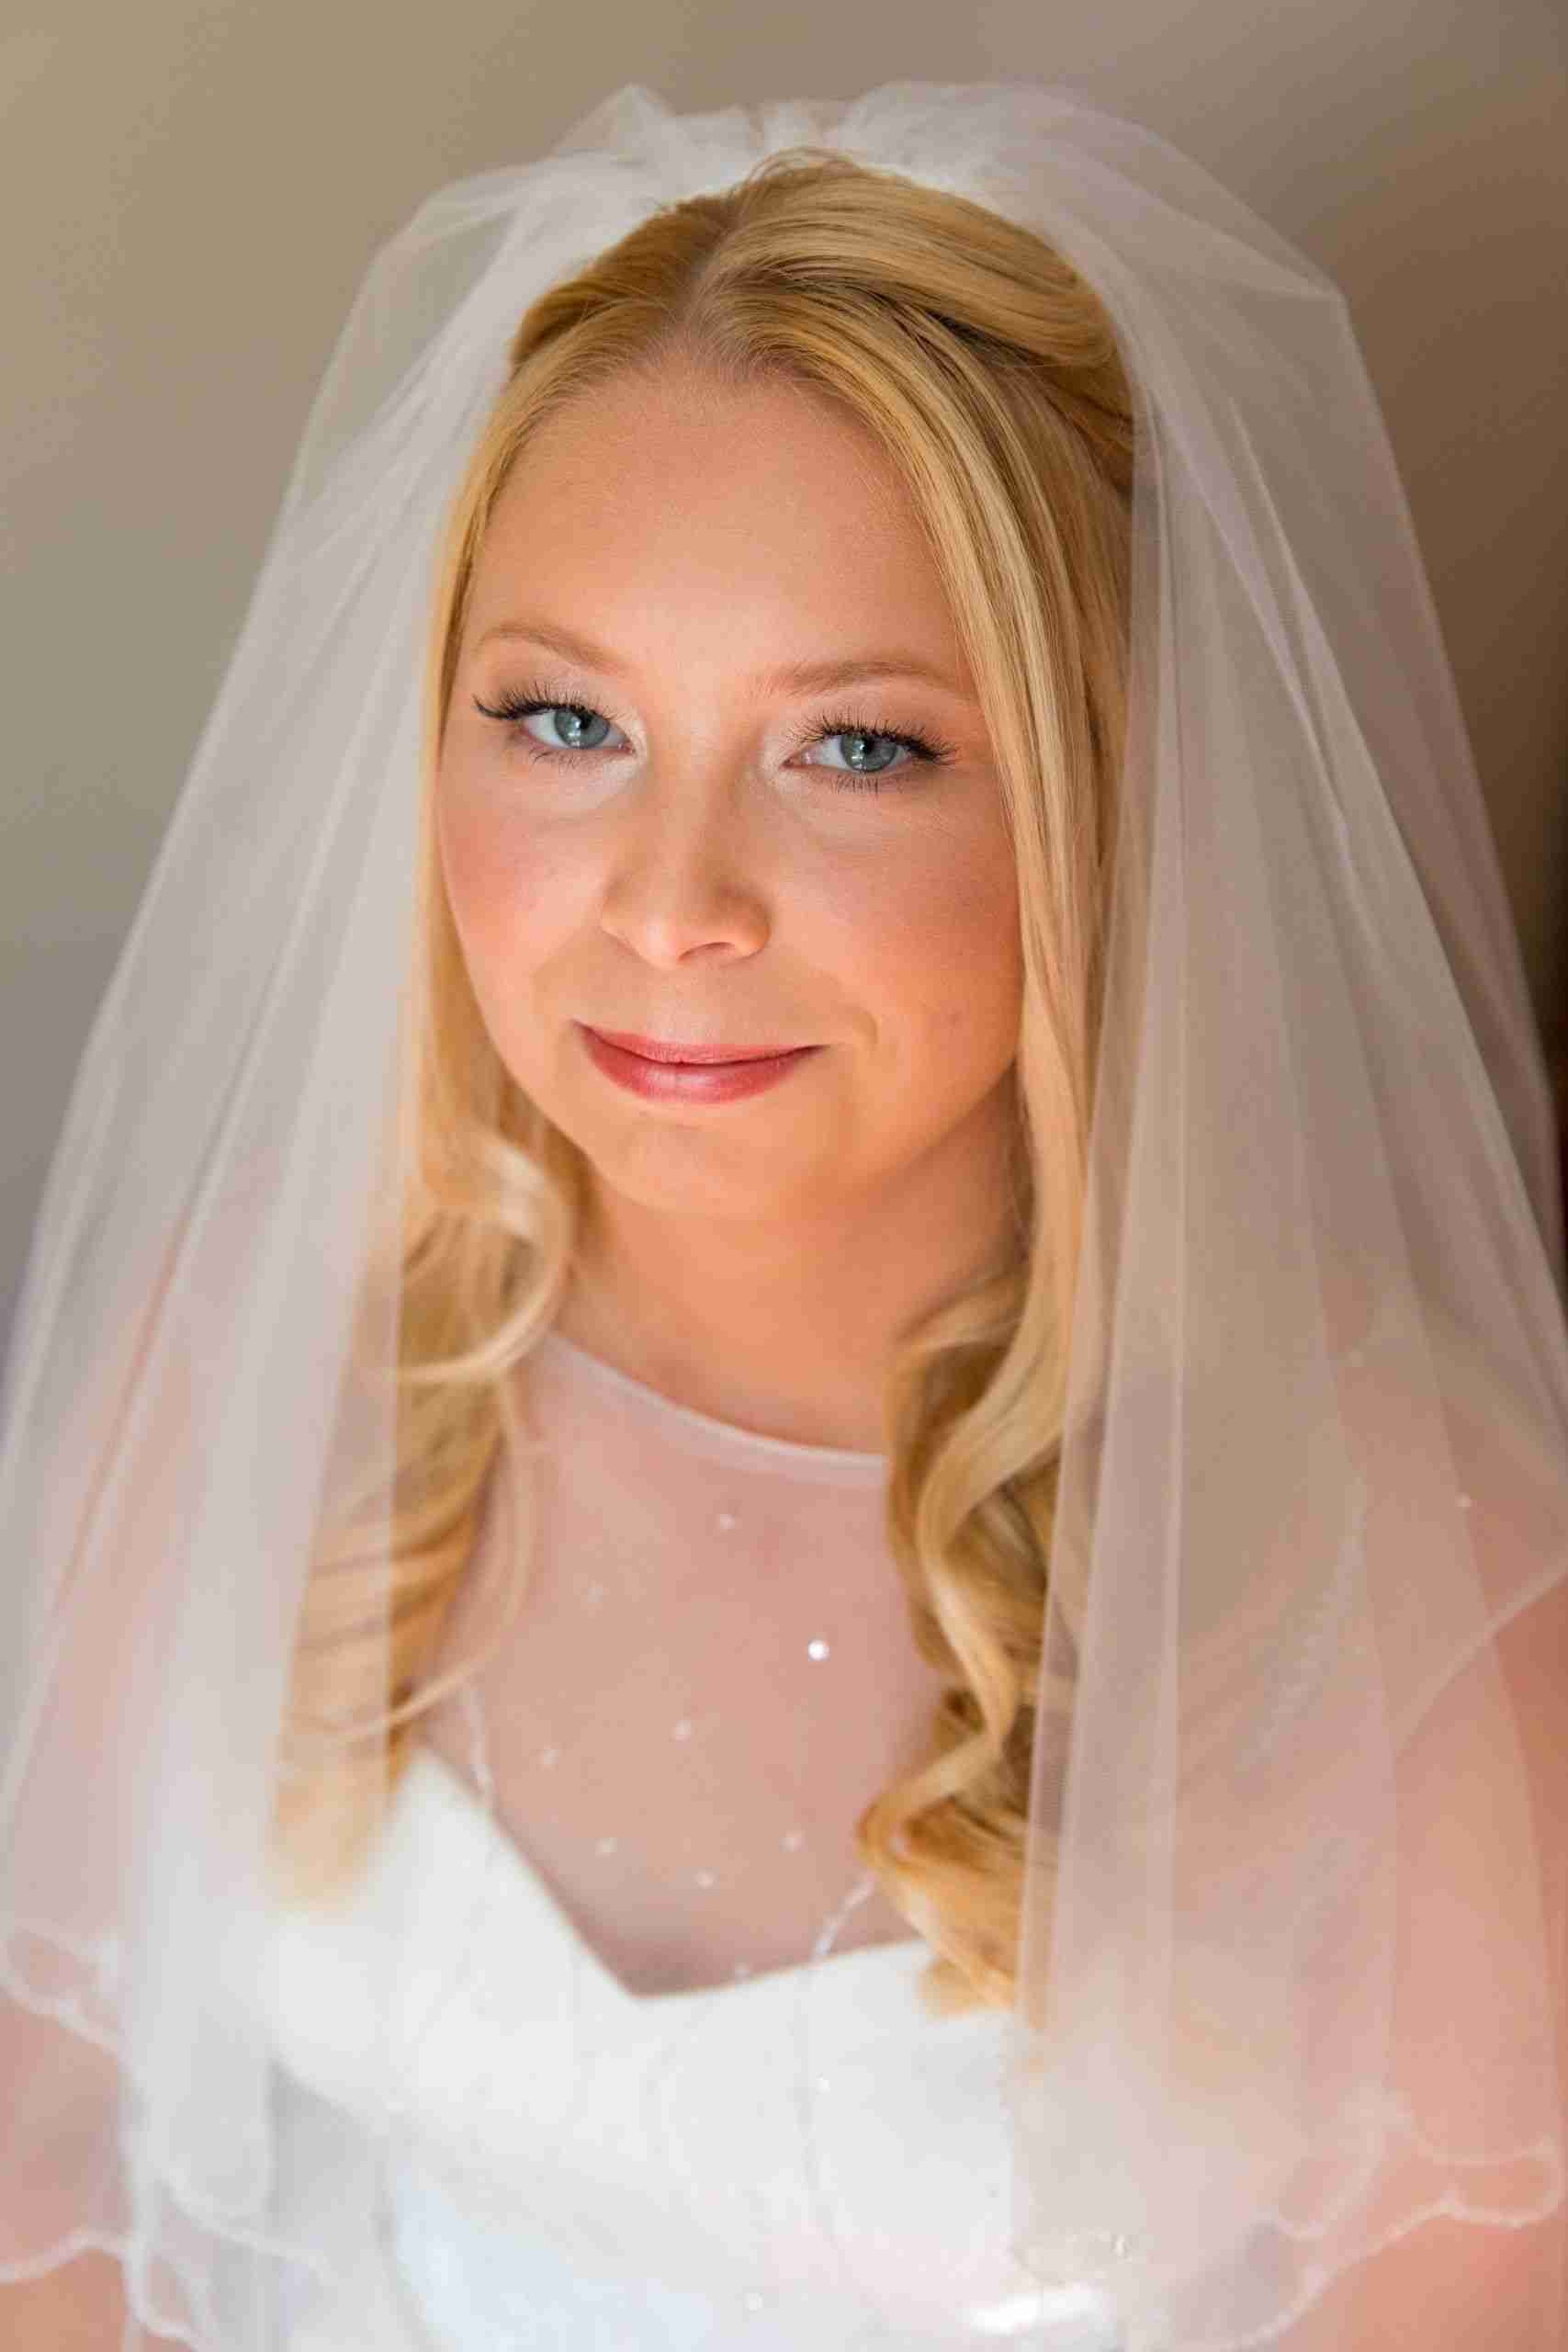 Close-up portrait of blonde haired, blue eyed bride on her wedding day. Bride wears a loosely curled, half-up, half-down hairstyle with an elbow length veil and natural, glowing makeup.